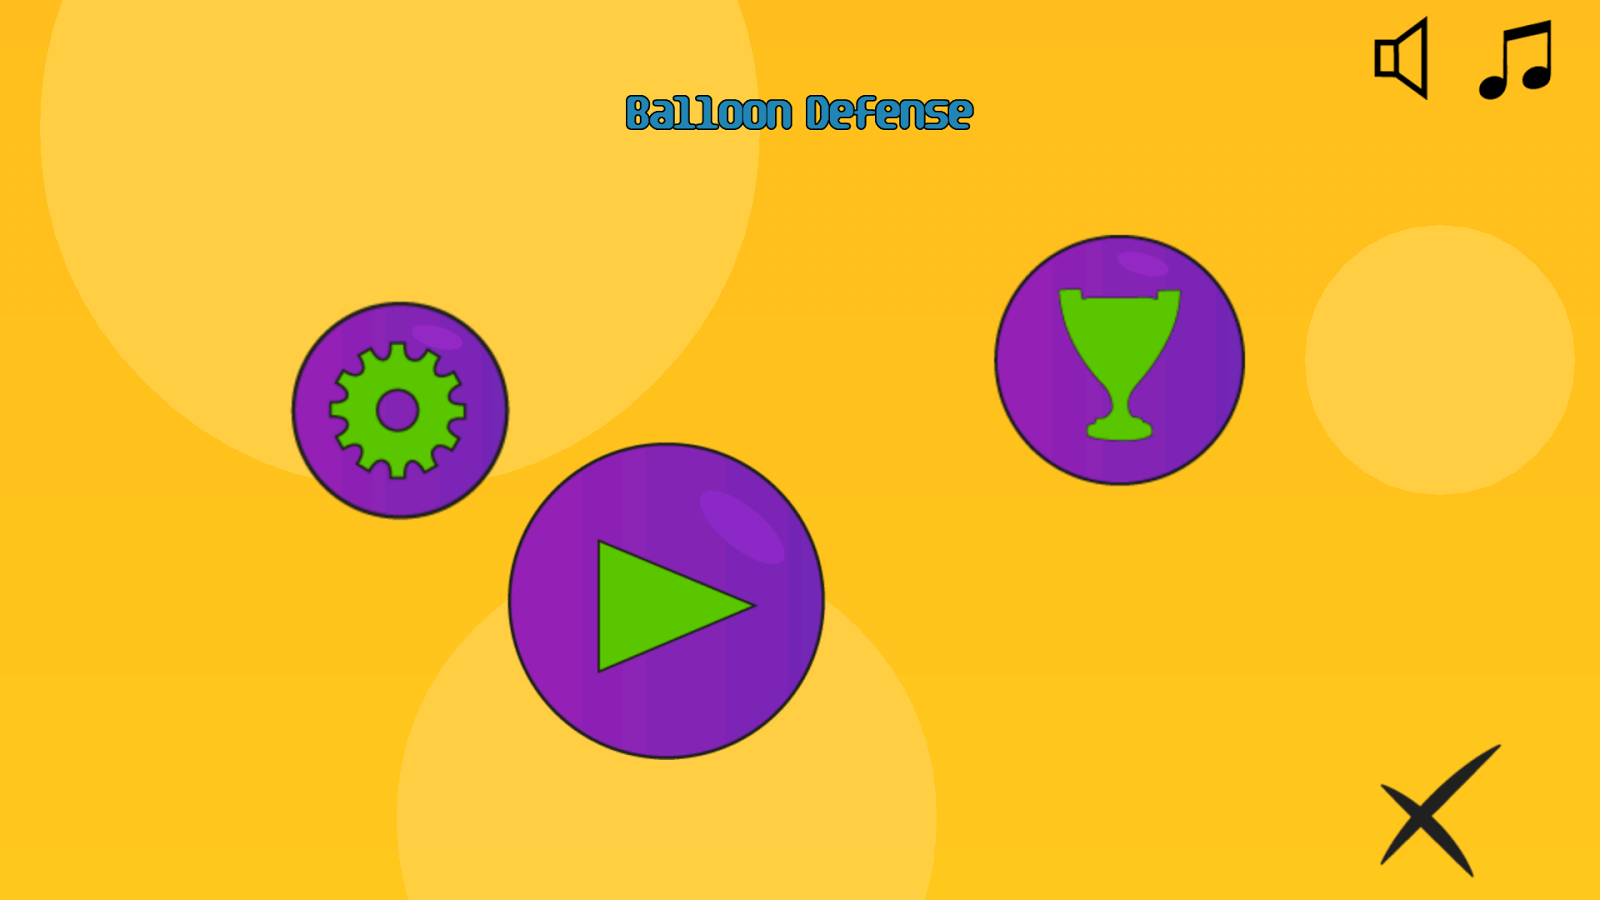 Balloon defense game free android apps on google play for Free balloon games